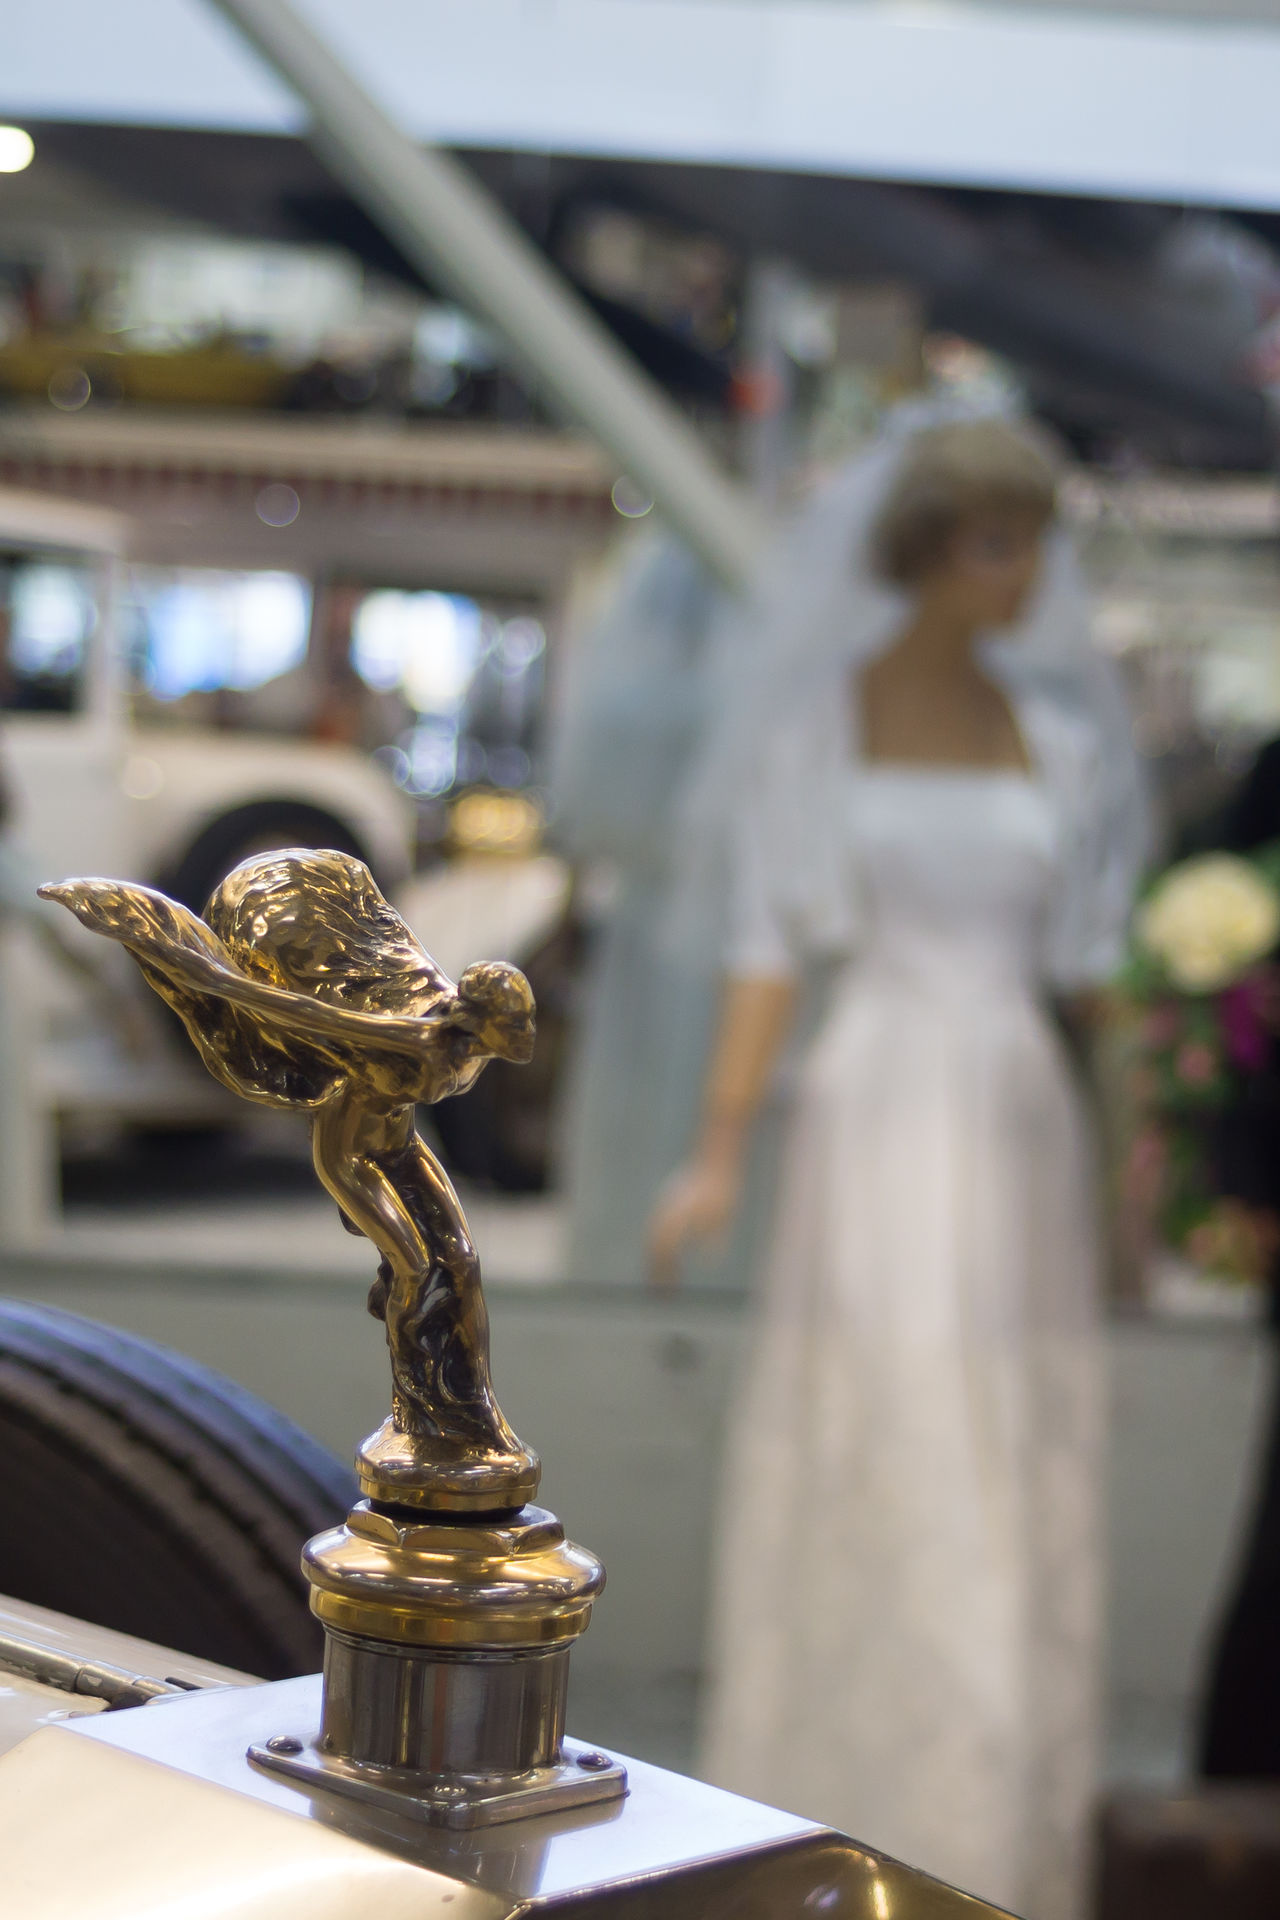 Auto und Technikmuseum Classic Car Close Up Technology Emily Focus On Foreground Gold Colored Hood Ornament No People Rolls Royce Spirit Of Ecstasy Statue Vintage Cars Rainersinsheim